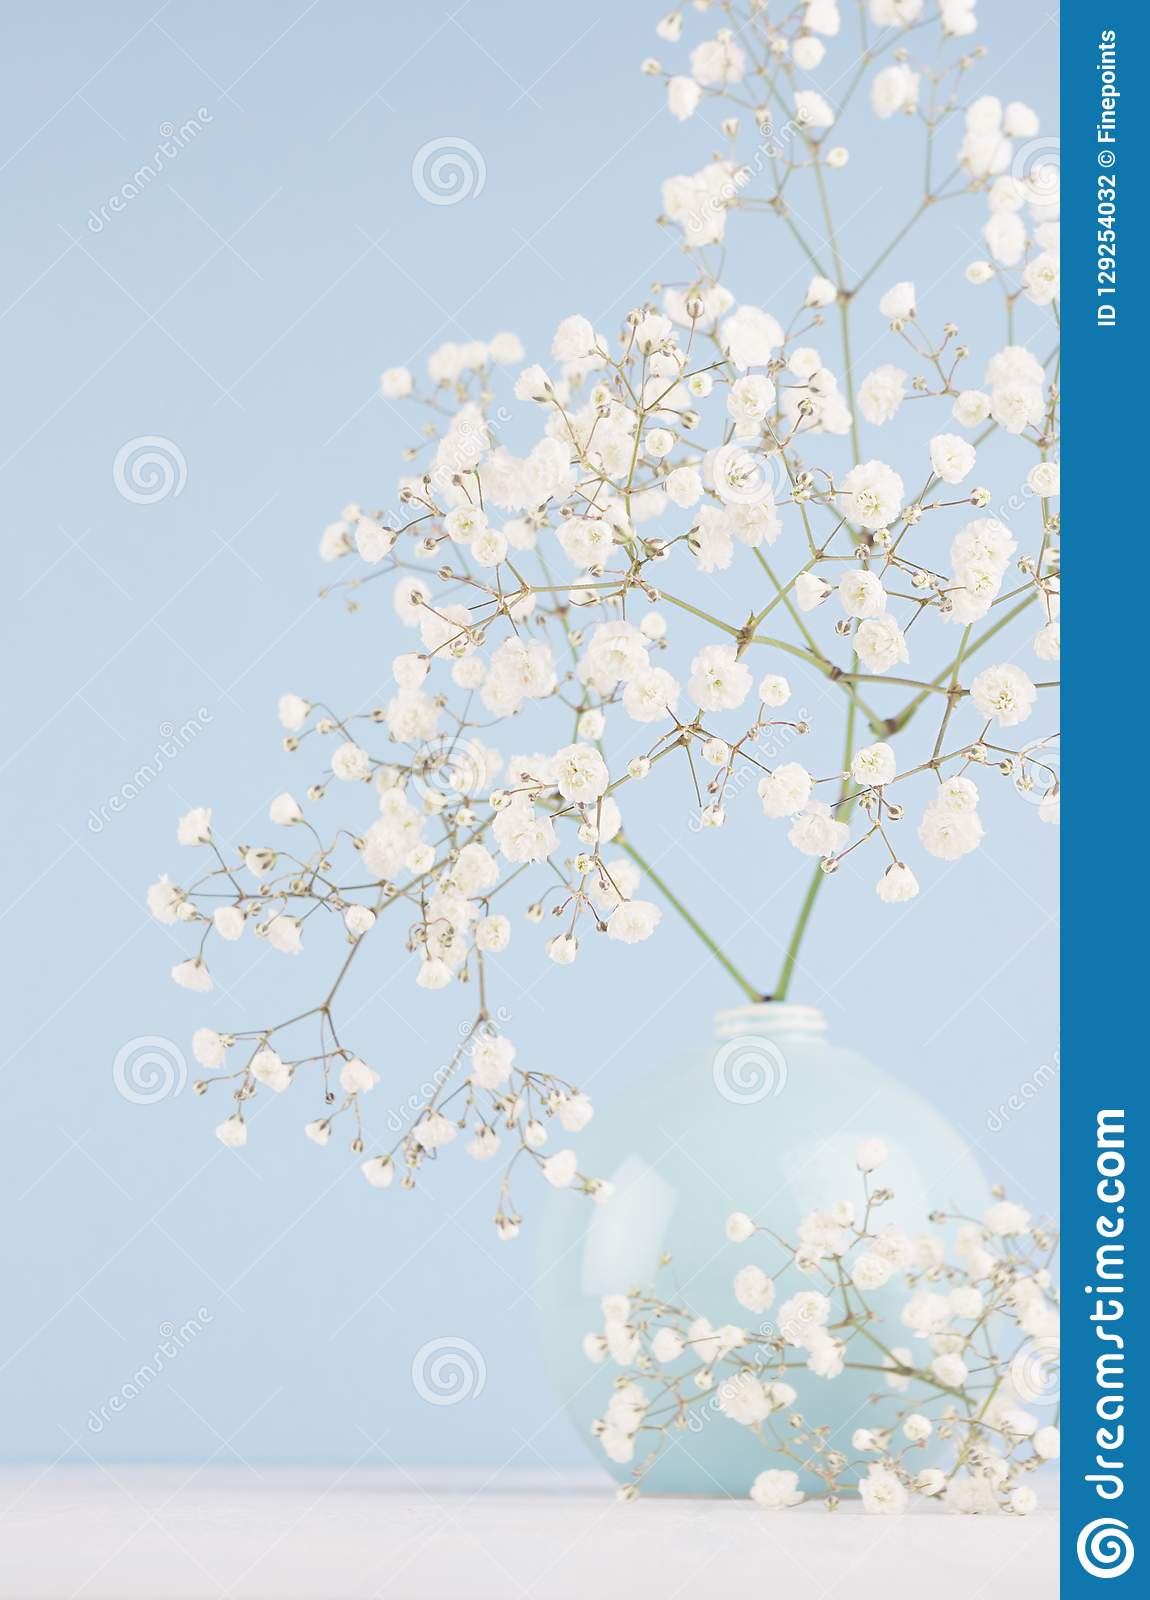 Summer fresh background with airy flowers in vase in light blue pastel color interior, vertical.